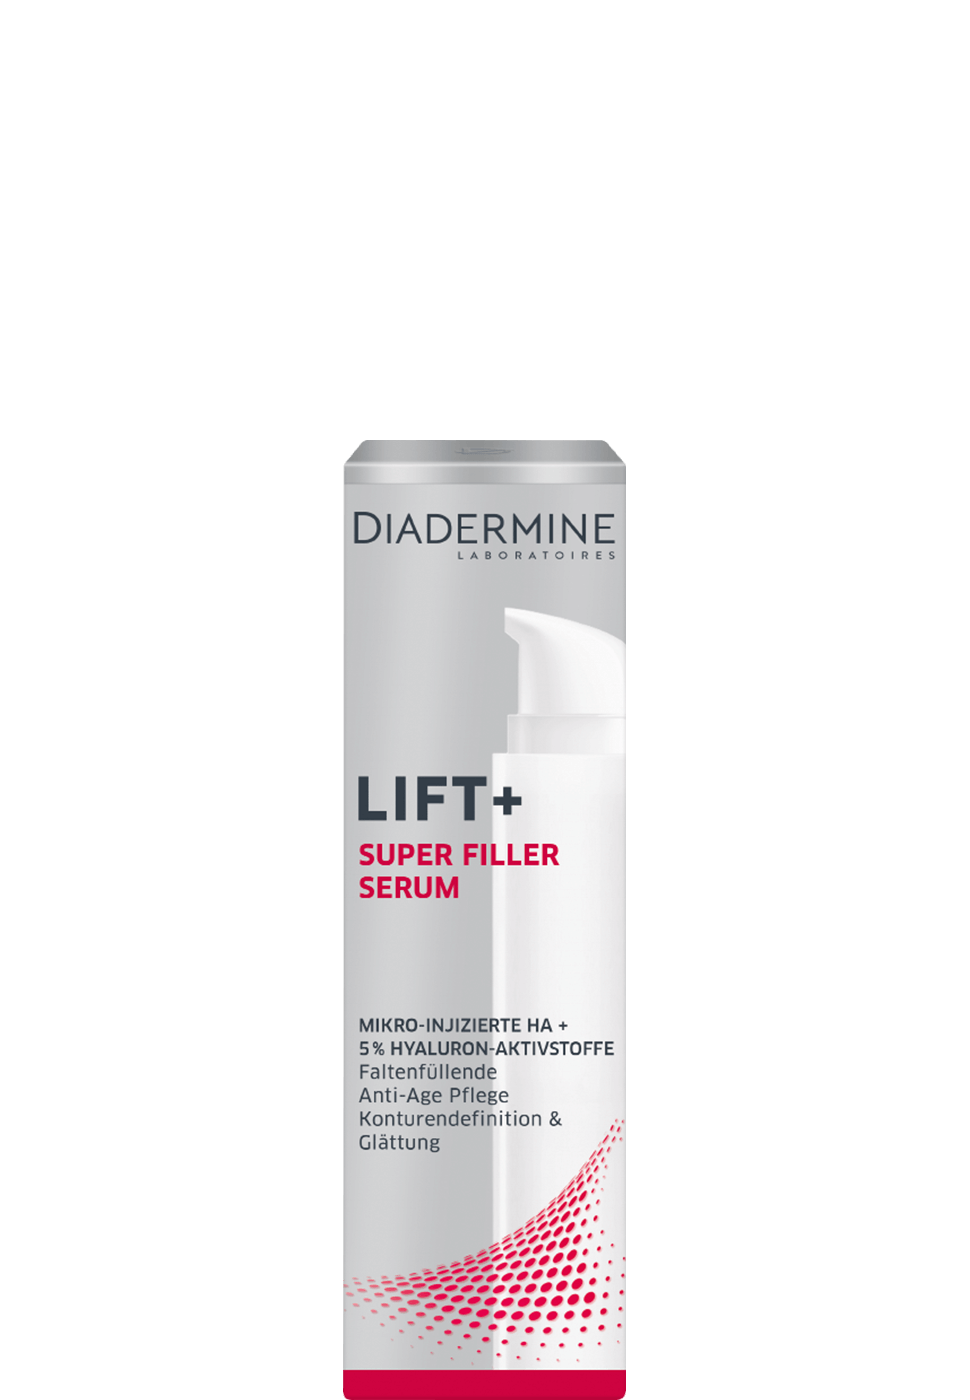 diadermine_de_lift_plus_super_filler_super_serum_970x1400